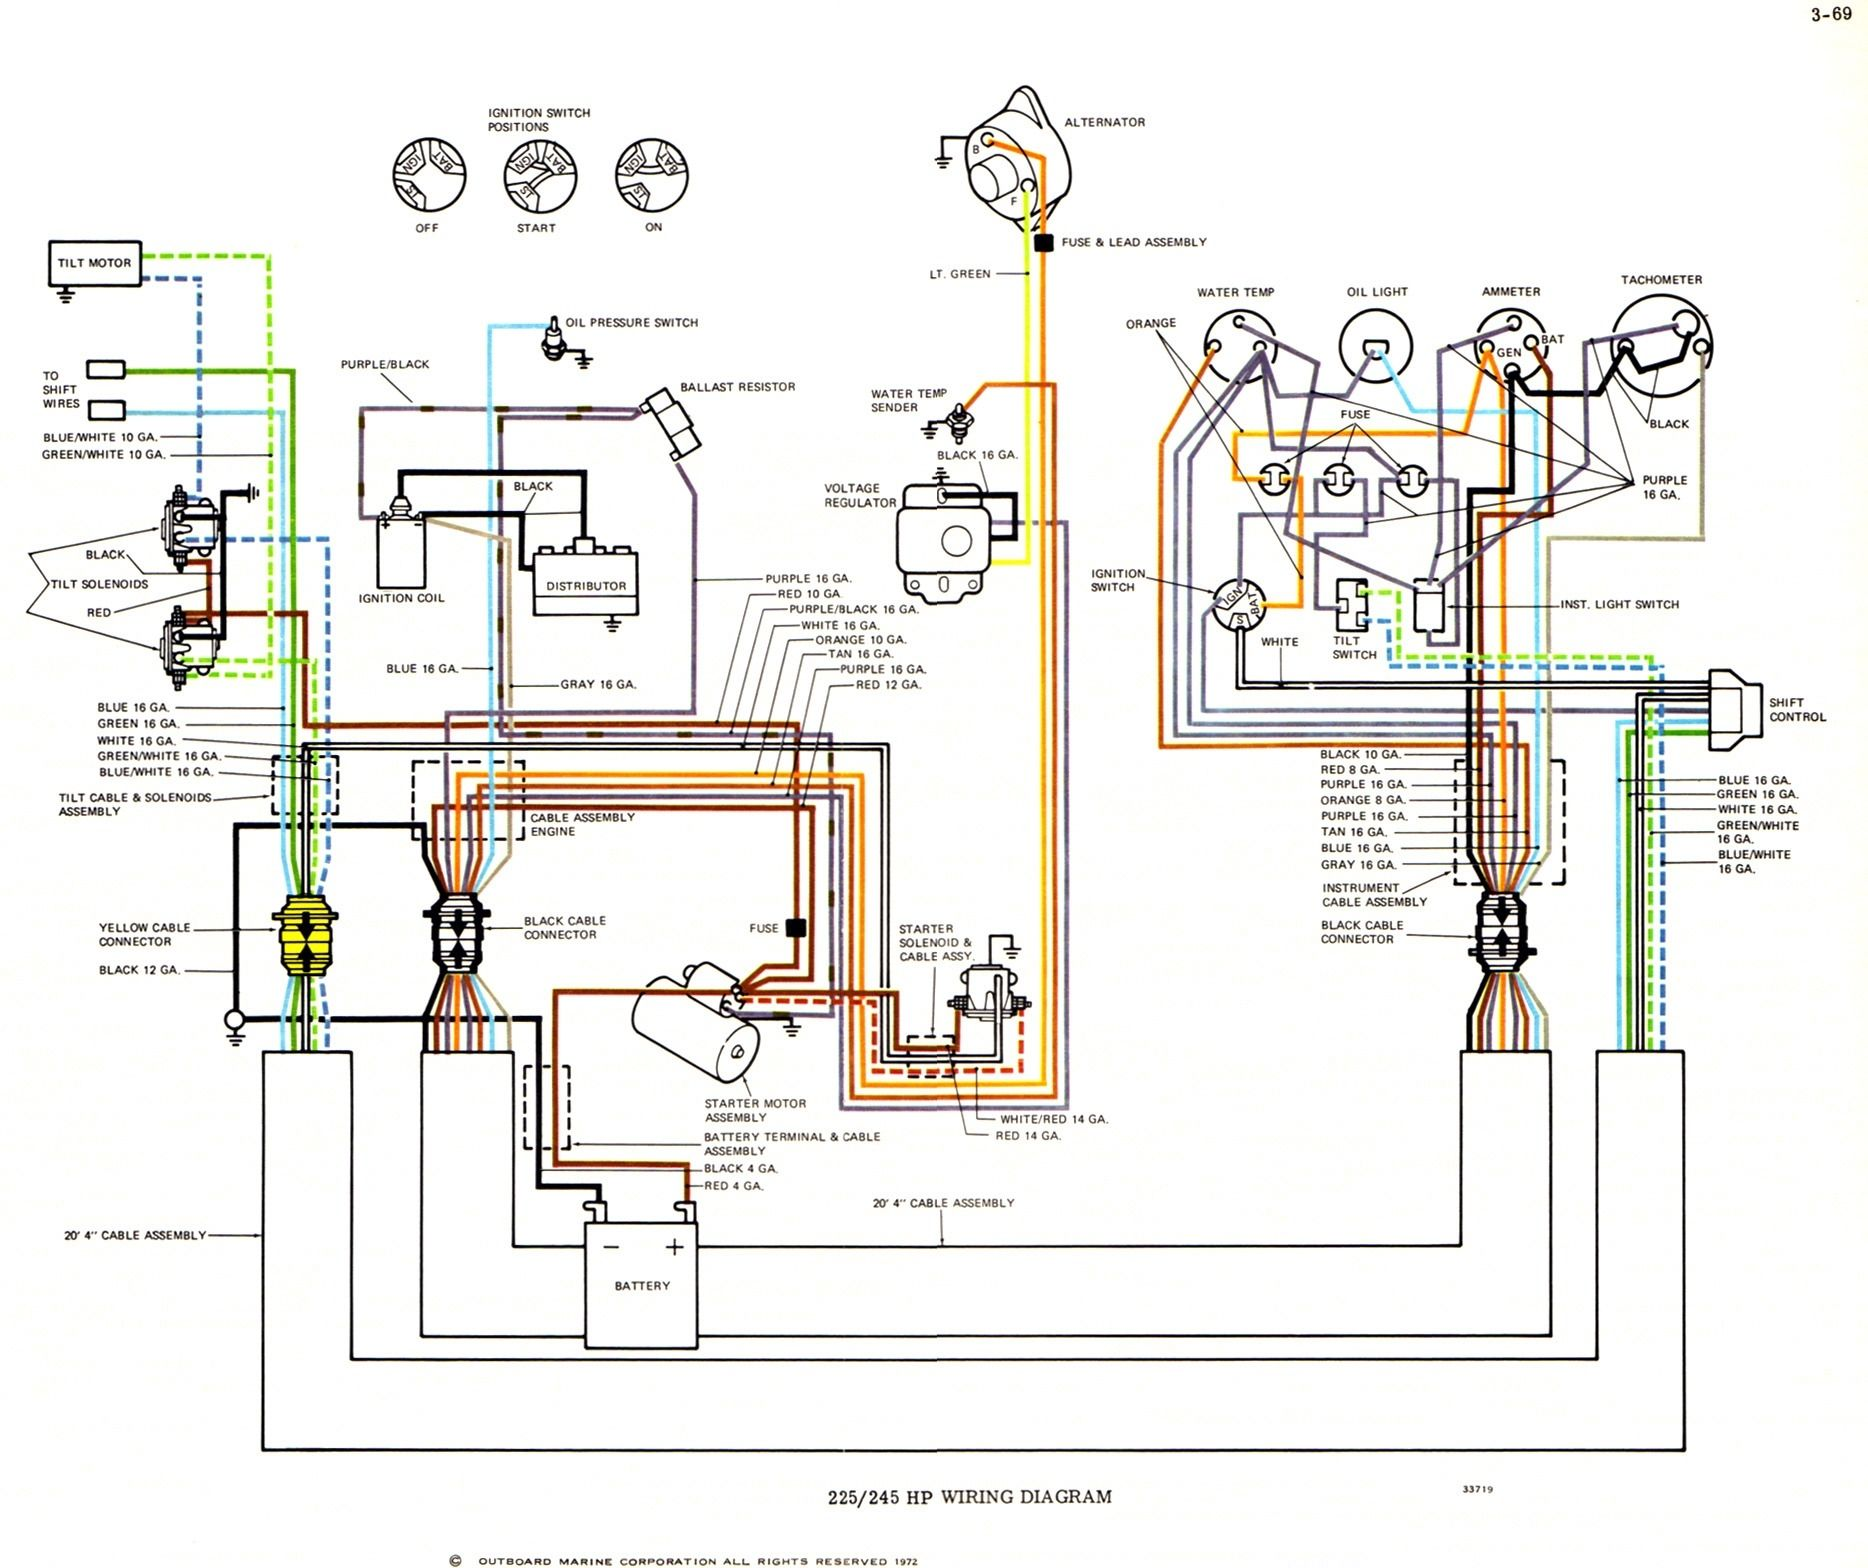 yamaha ignition wiring nice place to get wiring diagram Yamaha 250 Outboard Wiring Diagram